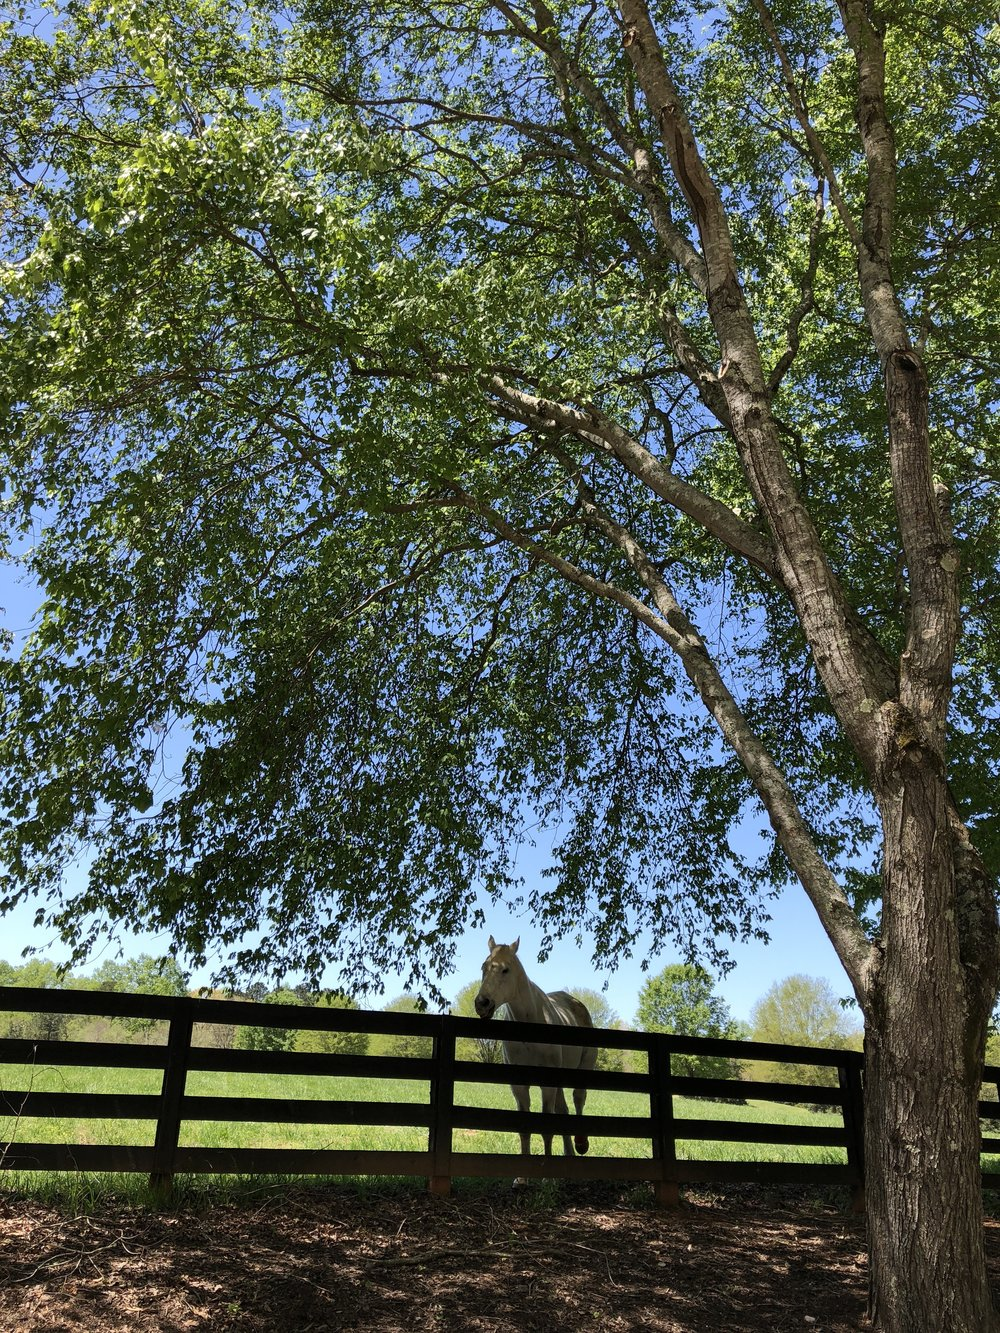 white-horse-fence-tree-sky.jpg